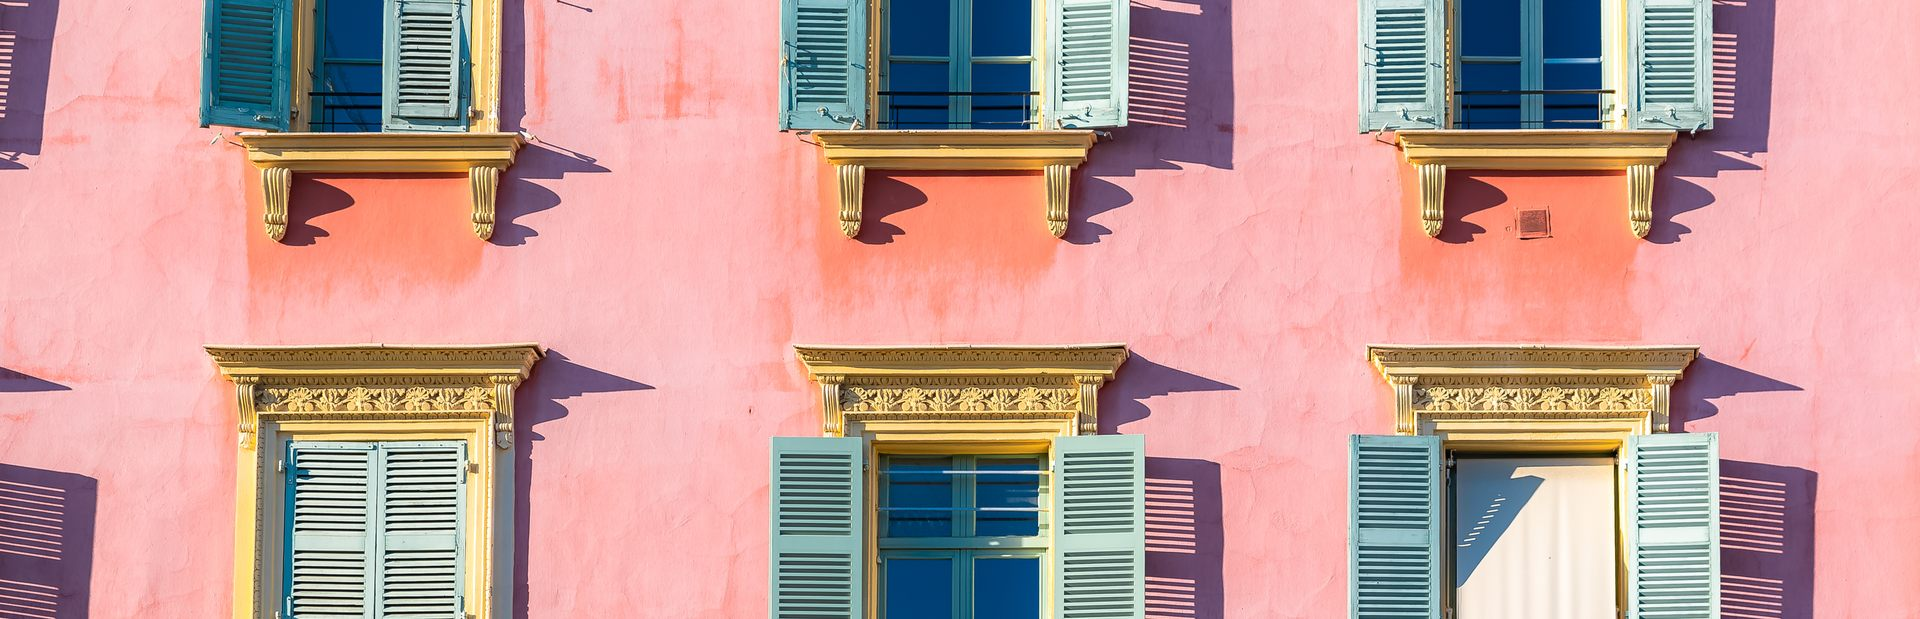 South of France photo tour